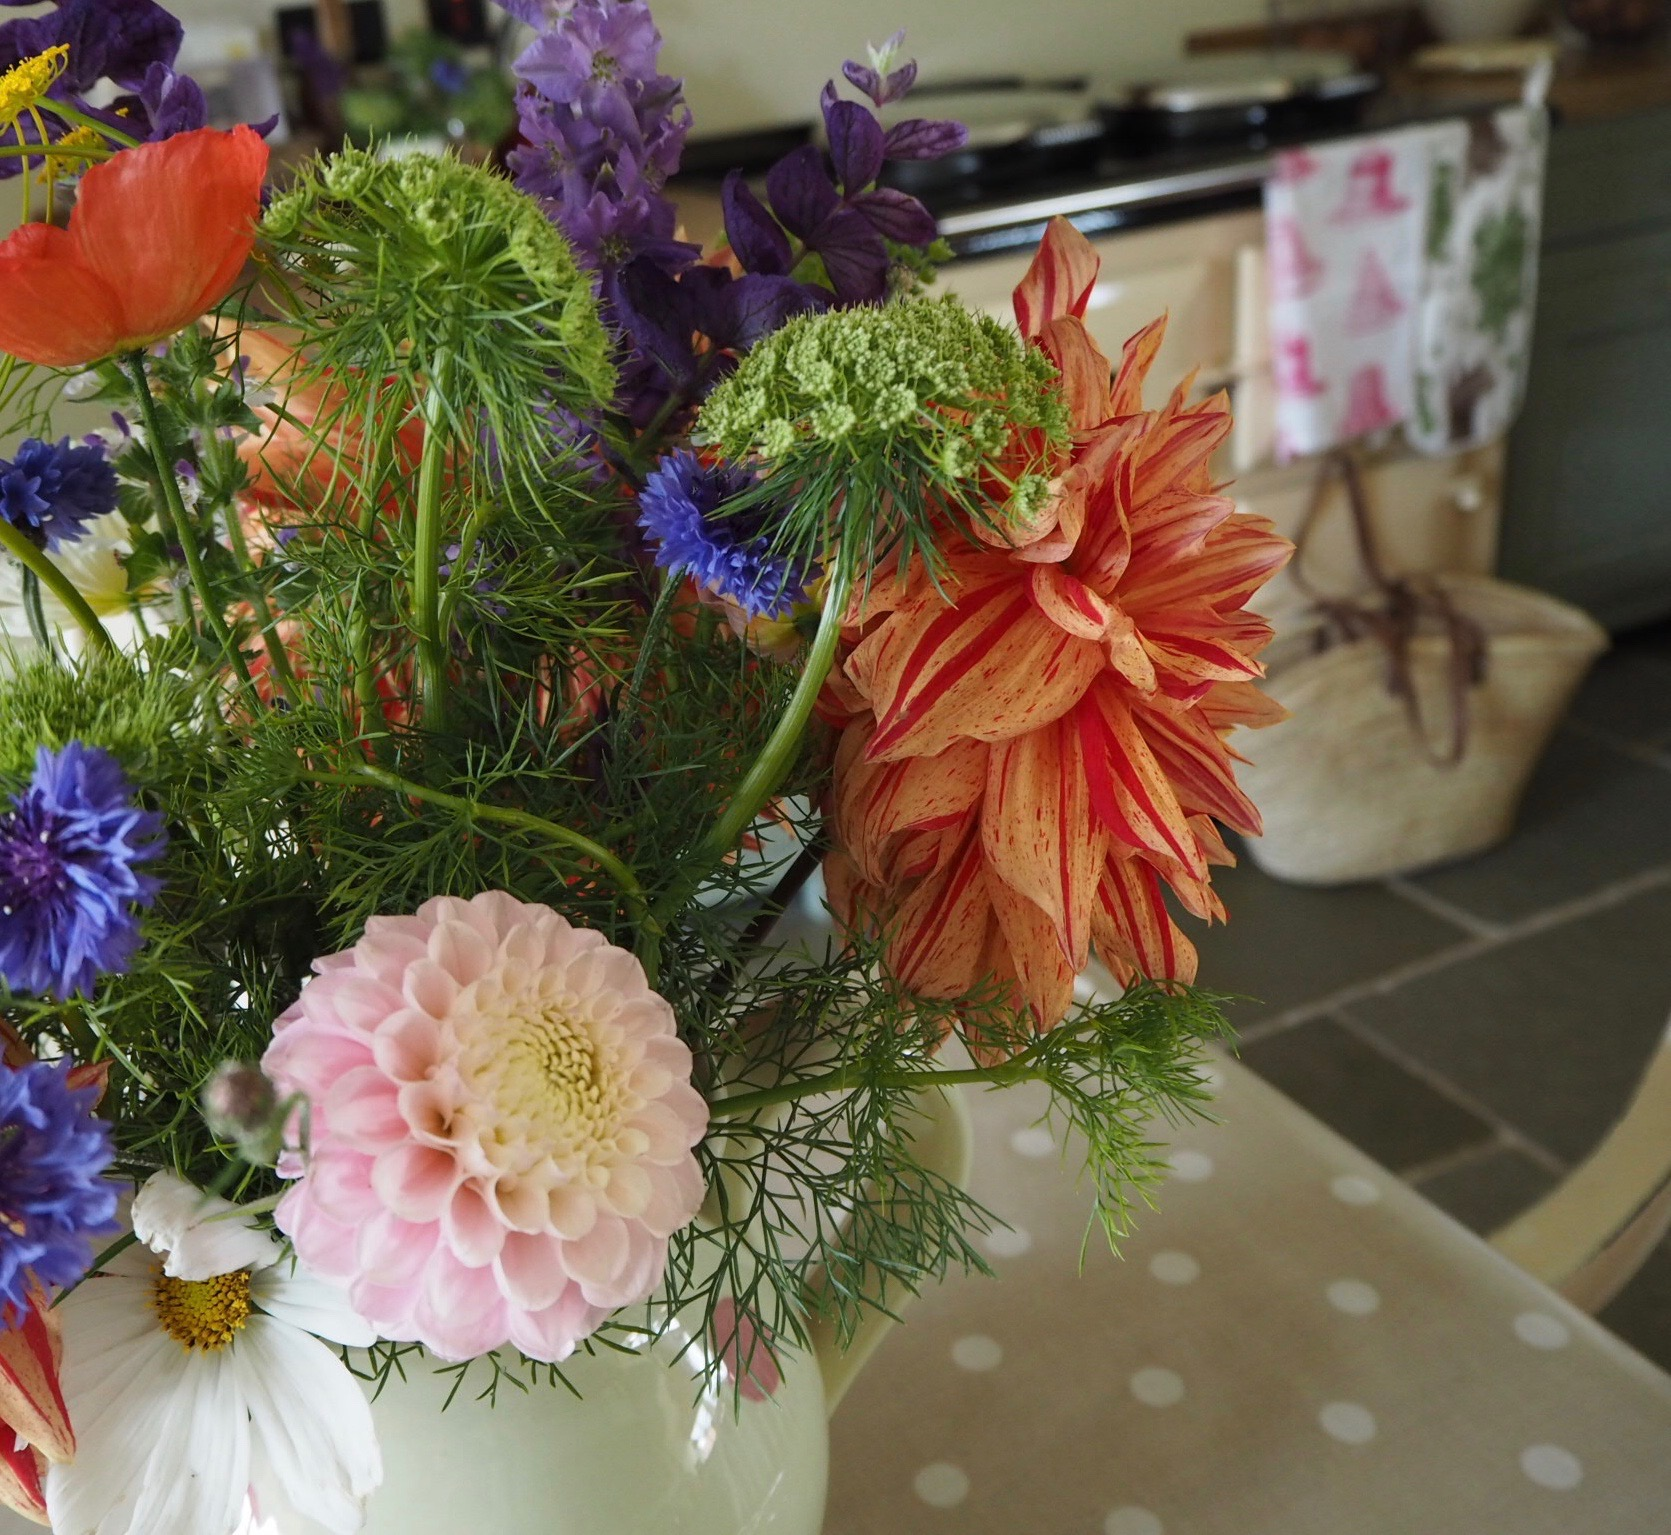 My first ever dahlias in pride of place on the kitchen table.